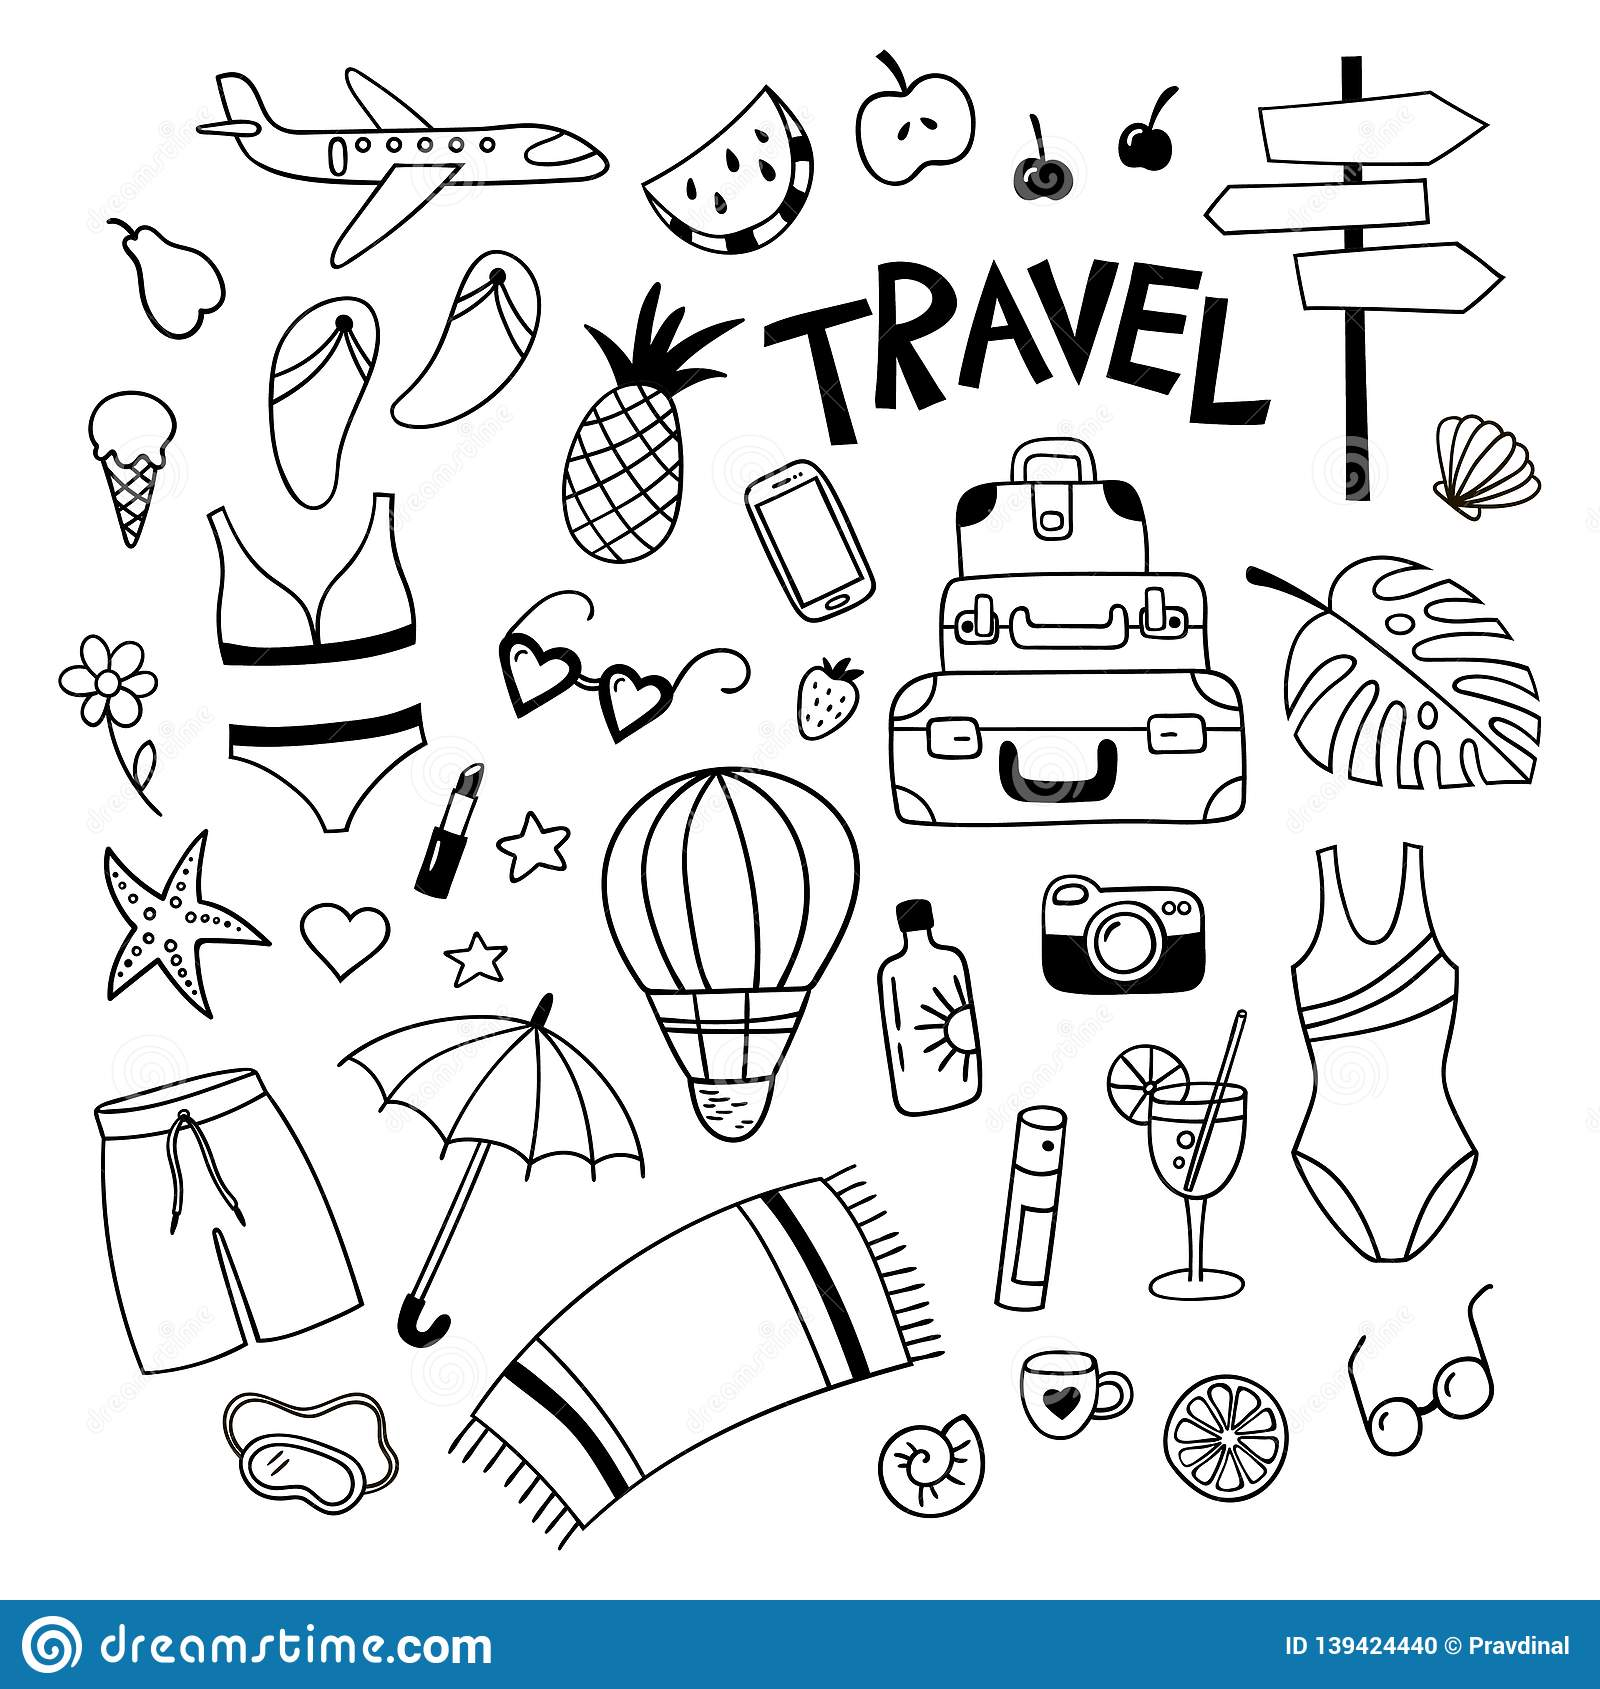 Set Of Travel Objekts In Doodle Style Hand Drawn Trip Elements Black And White Vector Clipart Stock Vector Illustration Of Beach Balloon 139424440